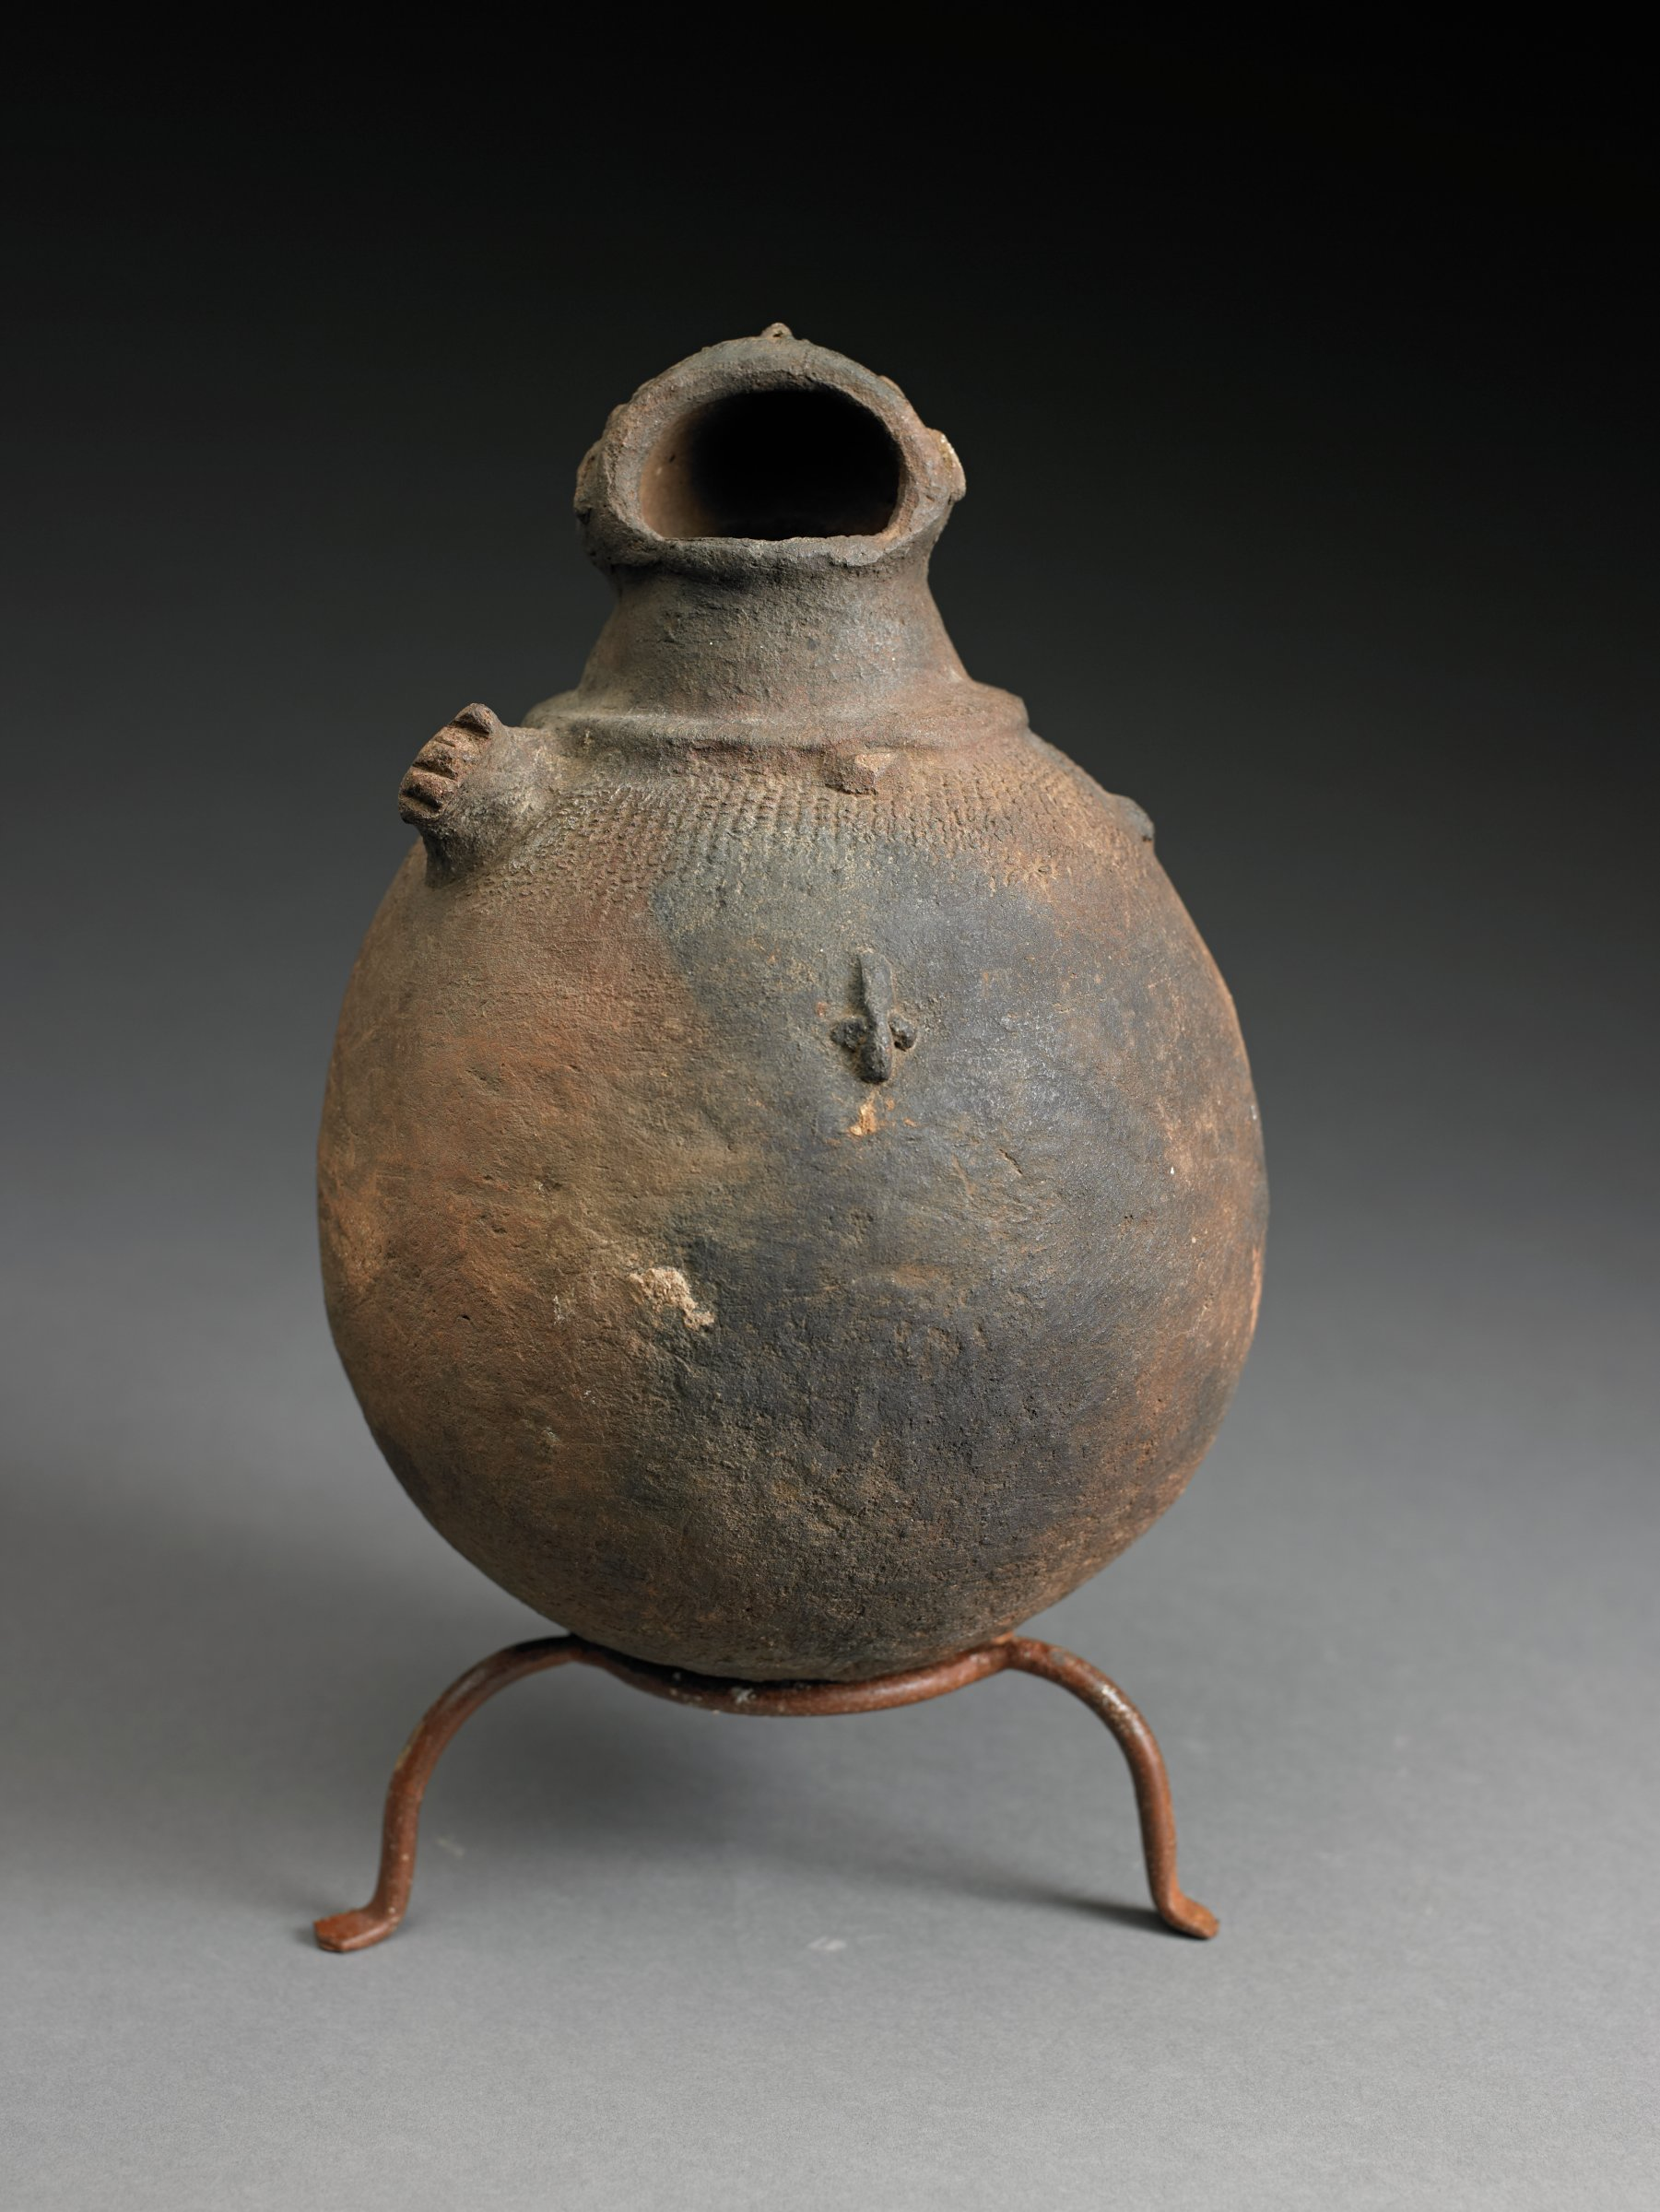 Spherical vessel with three short, narrow openings. Shoulder decorated with raised lizard and snake forms.